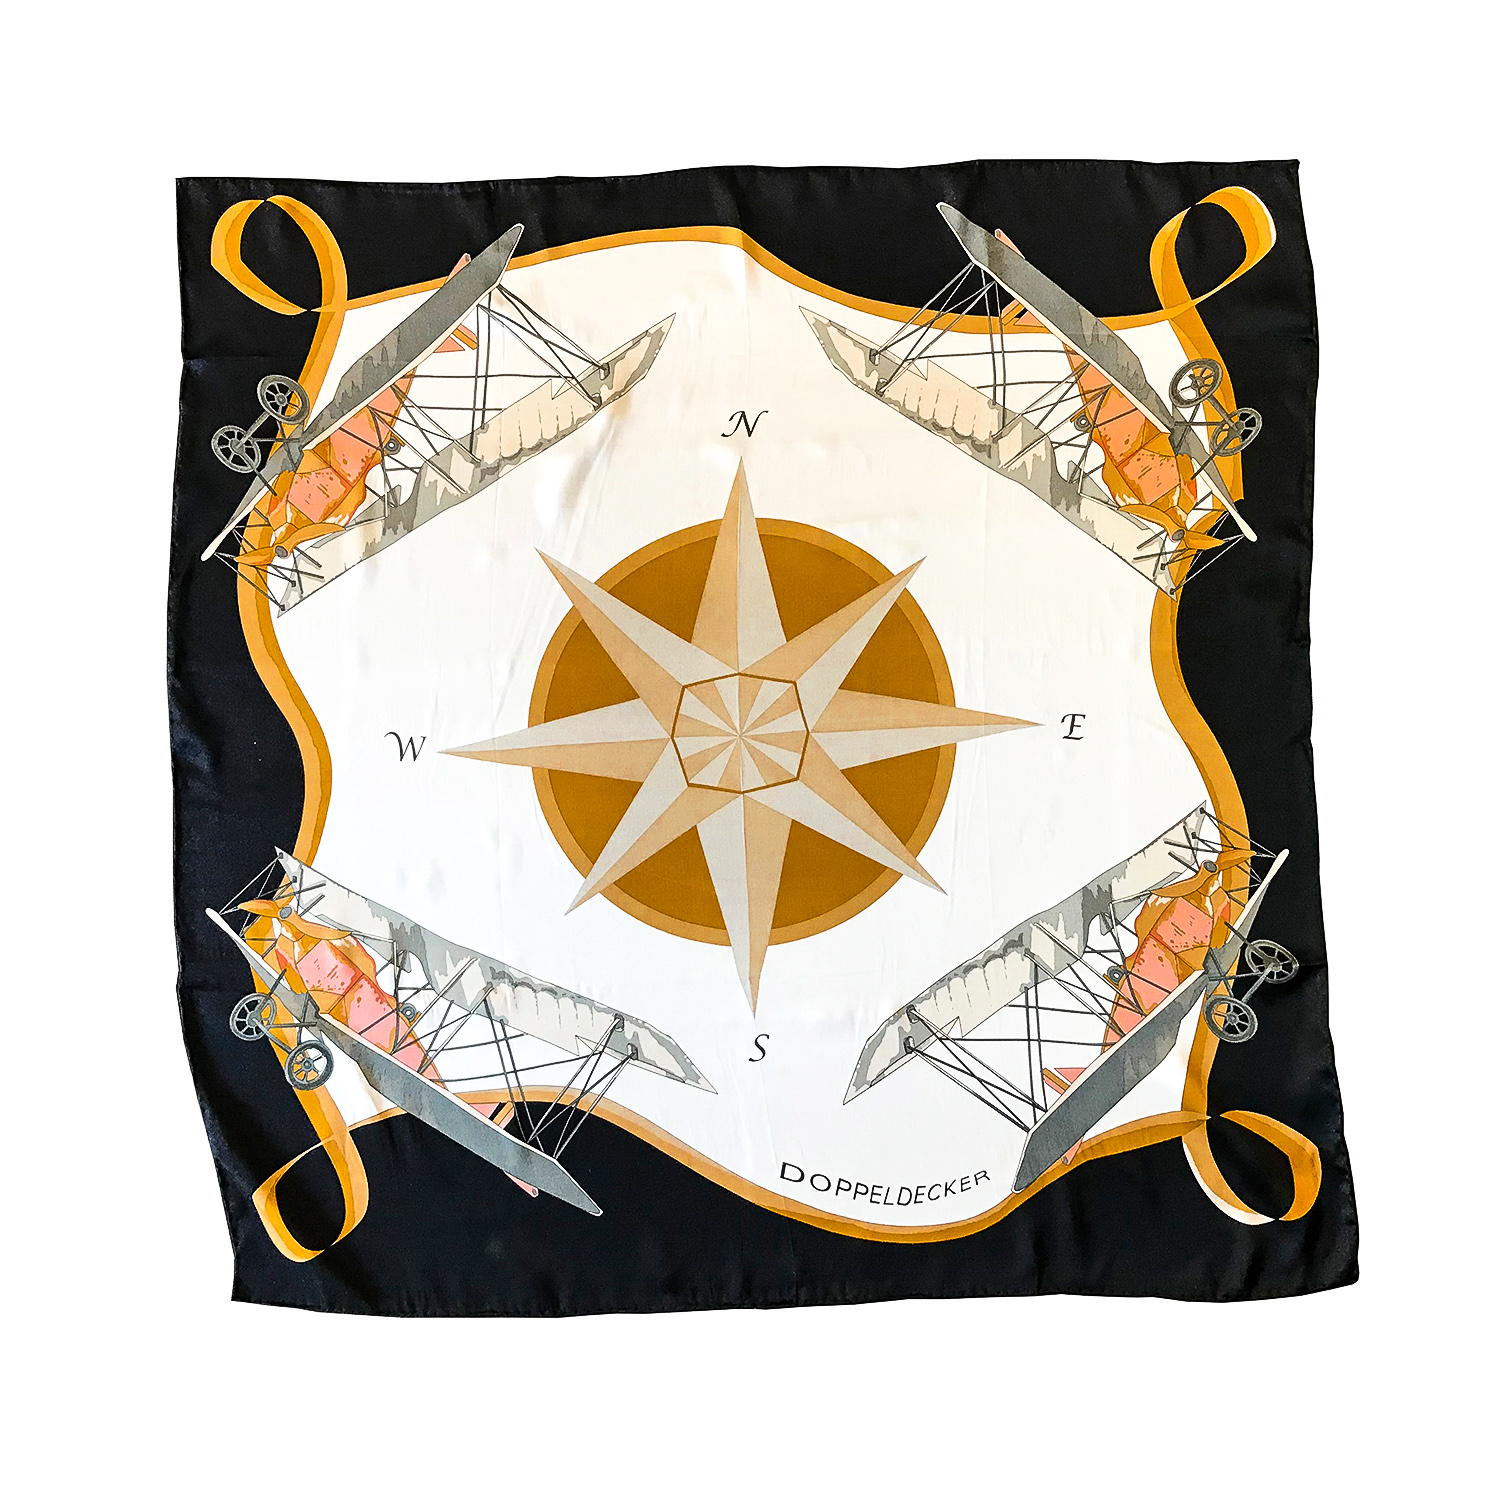 Silk scarf in Compass